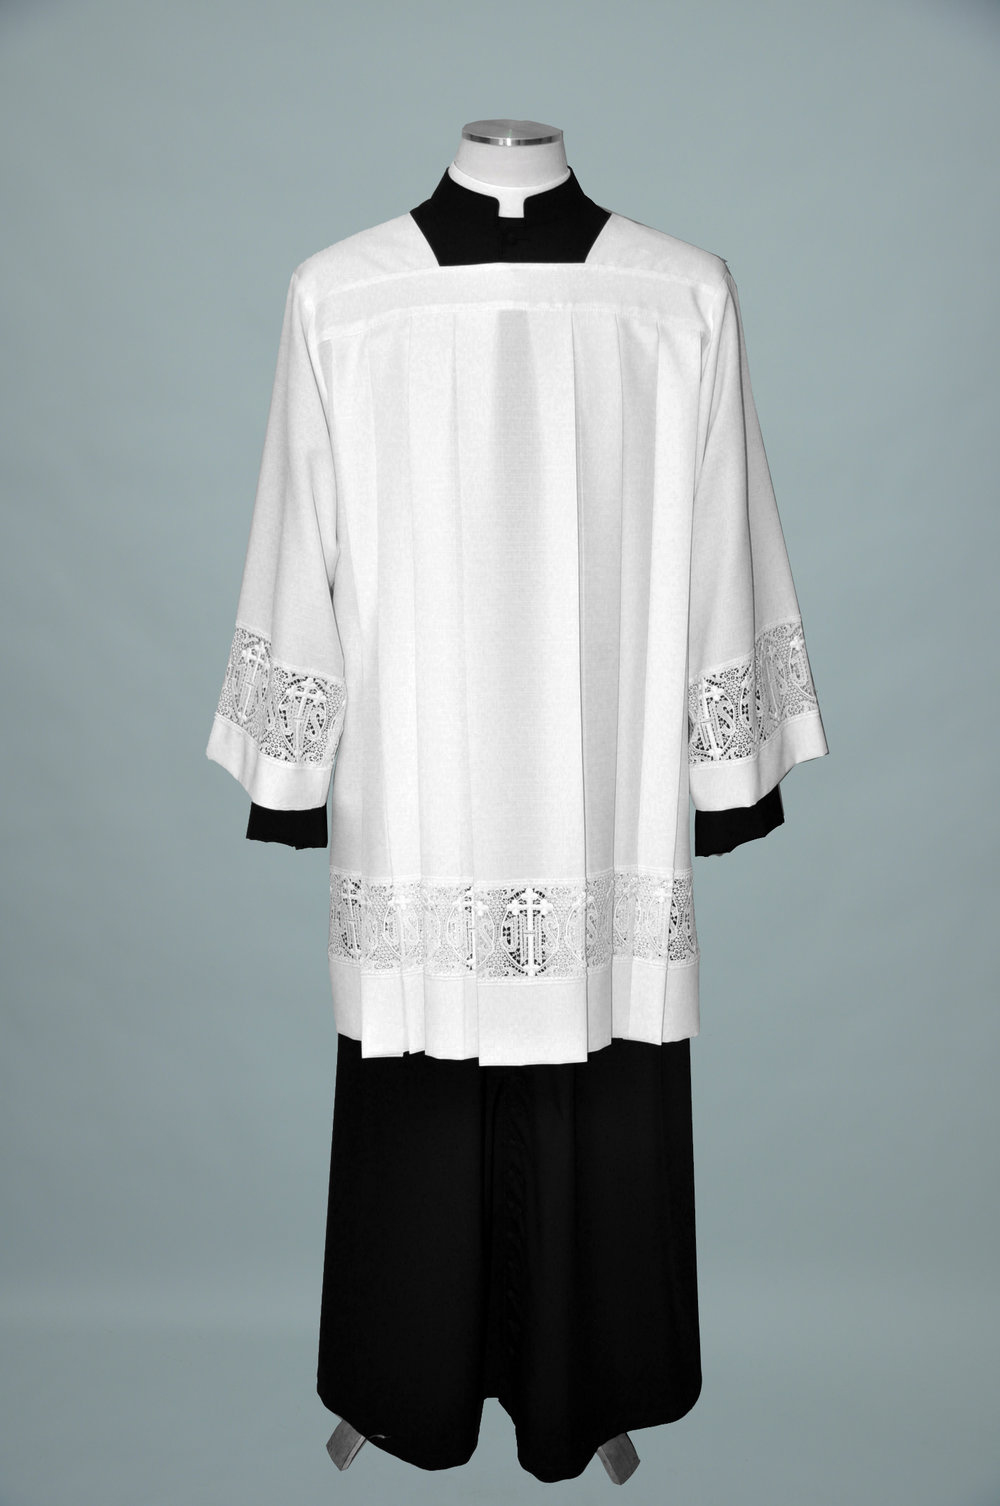 Surplice #5146 W 4in IHS & Cross Lace.jpg